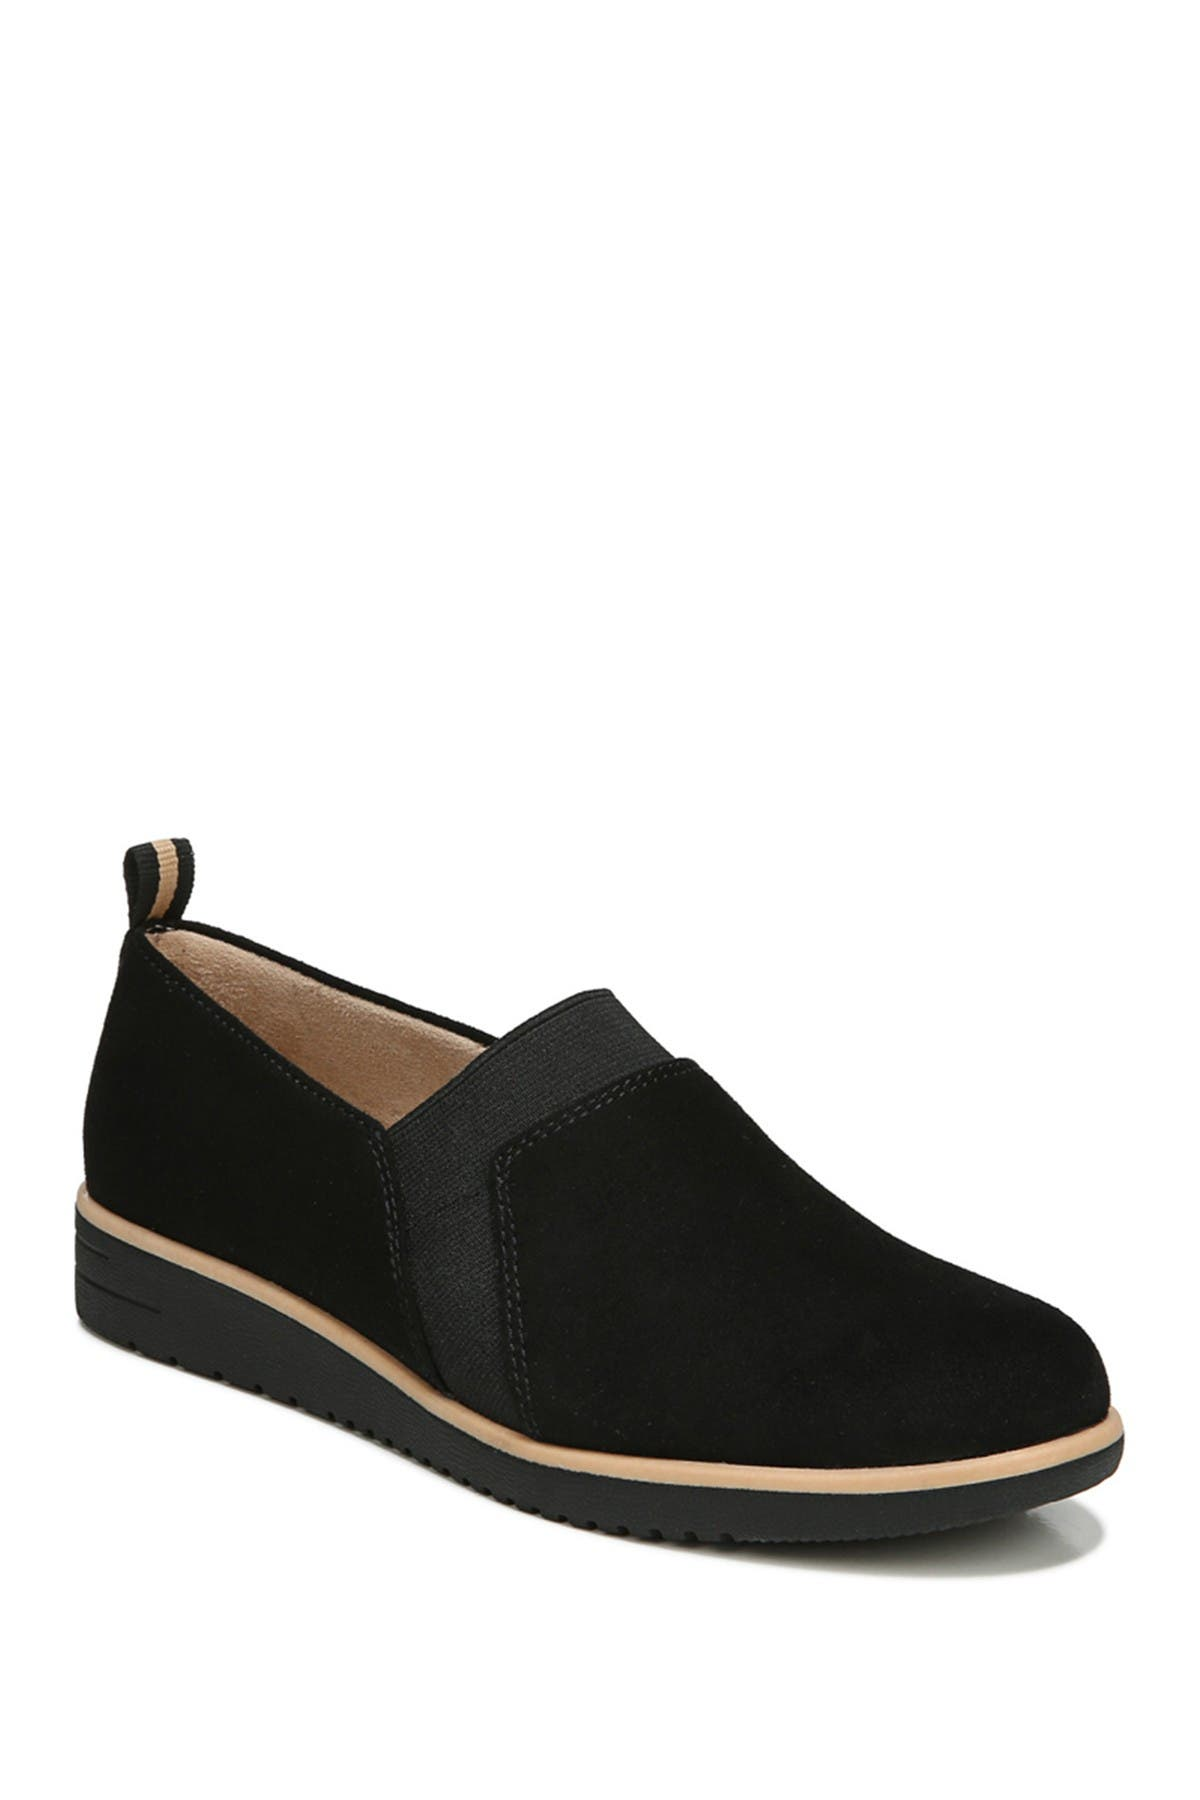 Image of SOUL Naturalizer Idea Slip-On Loafer - Wide Width Available